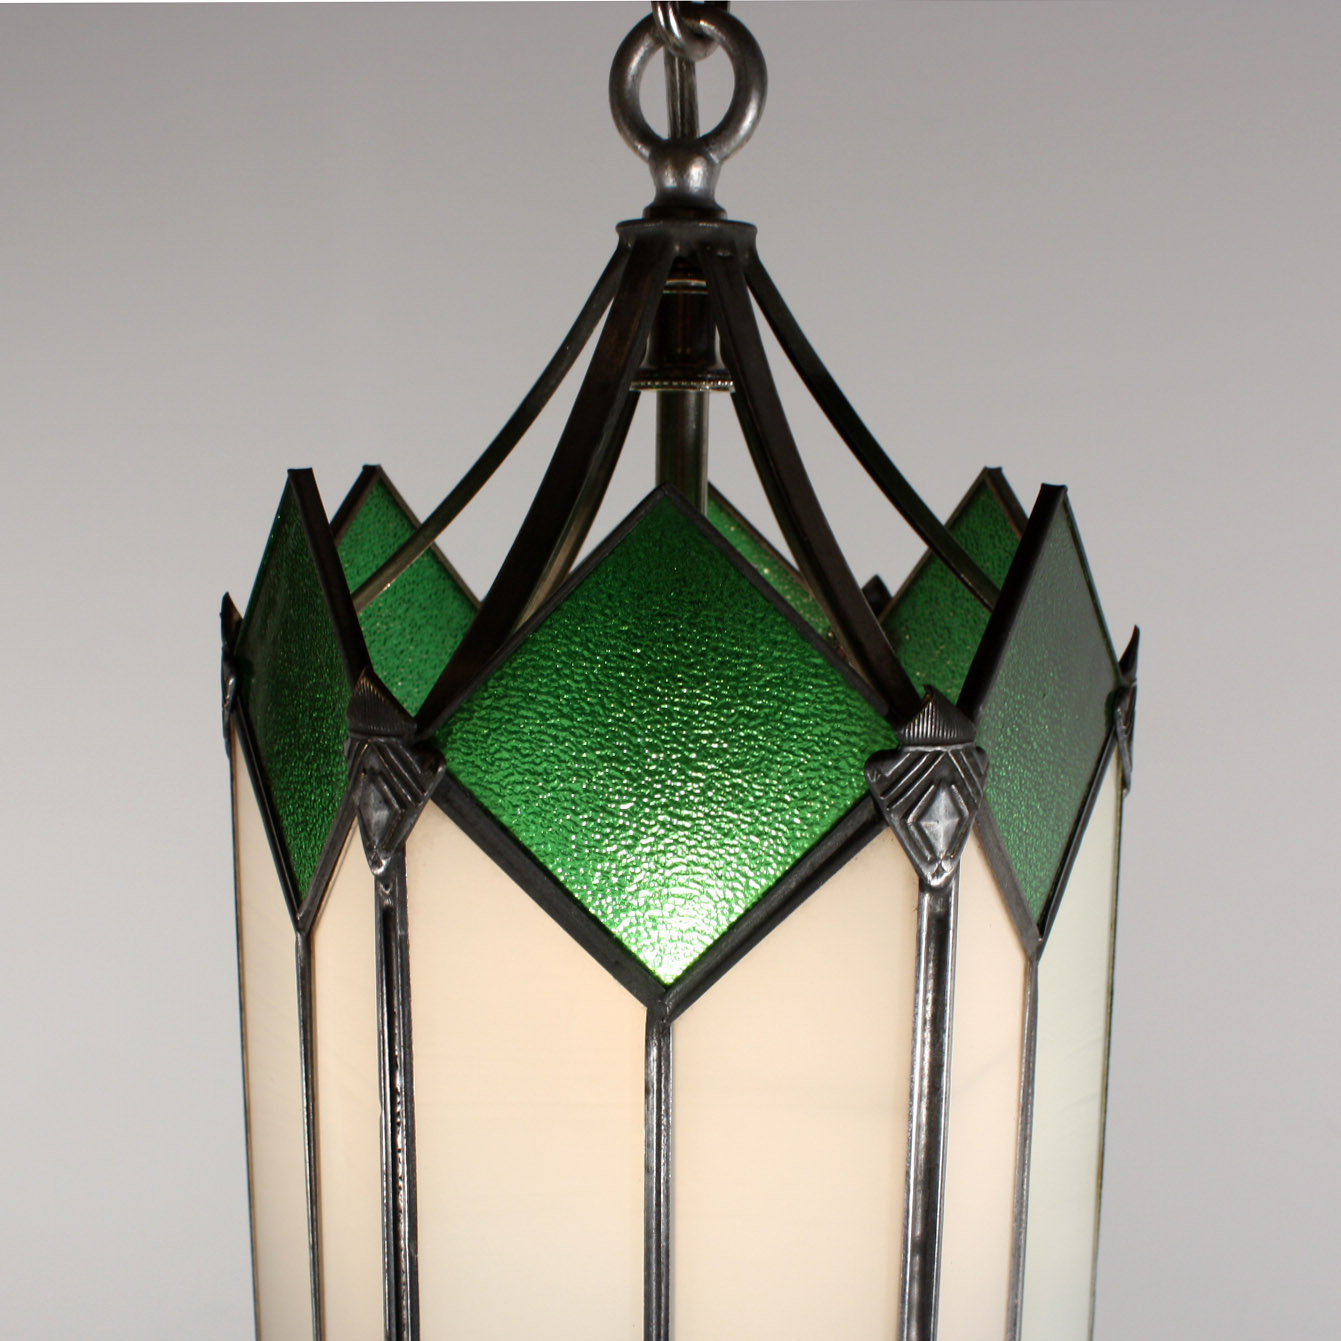 deco pendant light with original stained glass nc1438 rw for sale. Black Bedroom Furniture Sets. Home Design Ideas